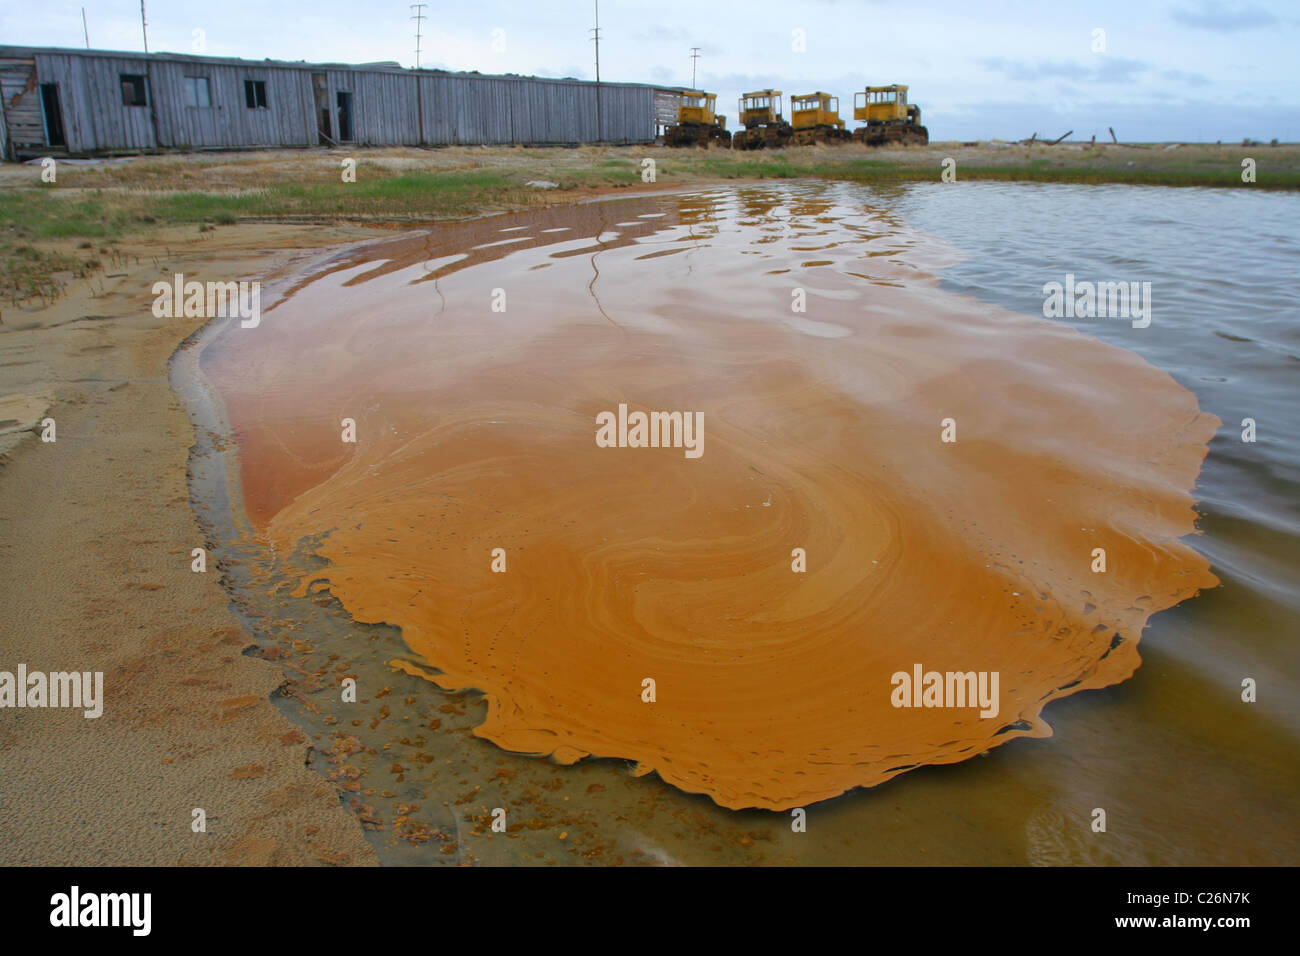 Oil Slick Spill afloat. Yamal, RUSSIA - Stock Image